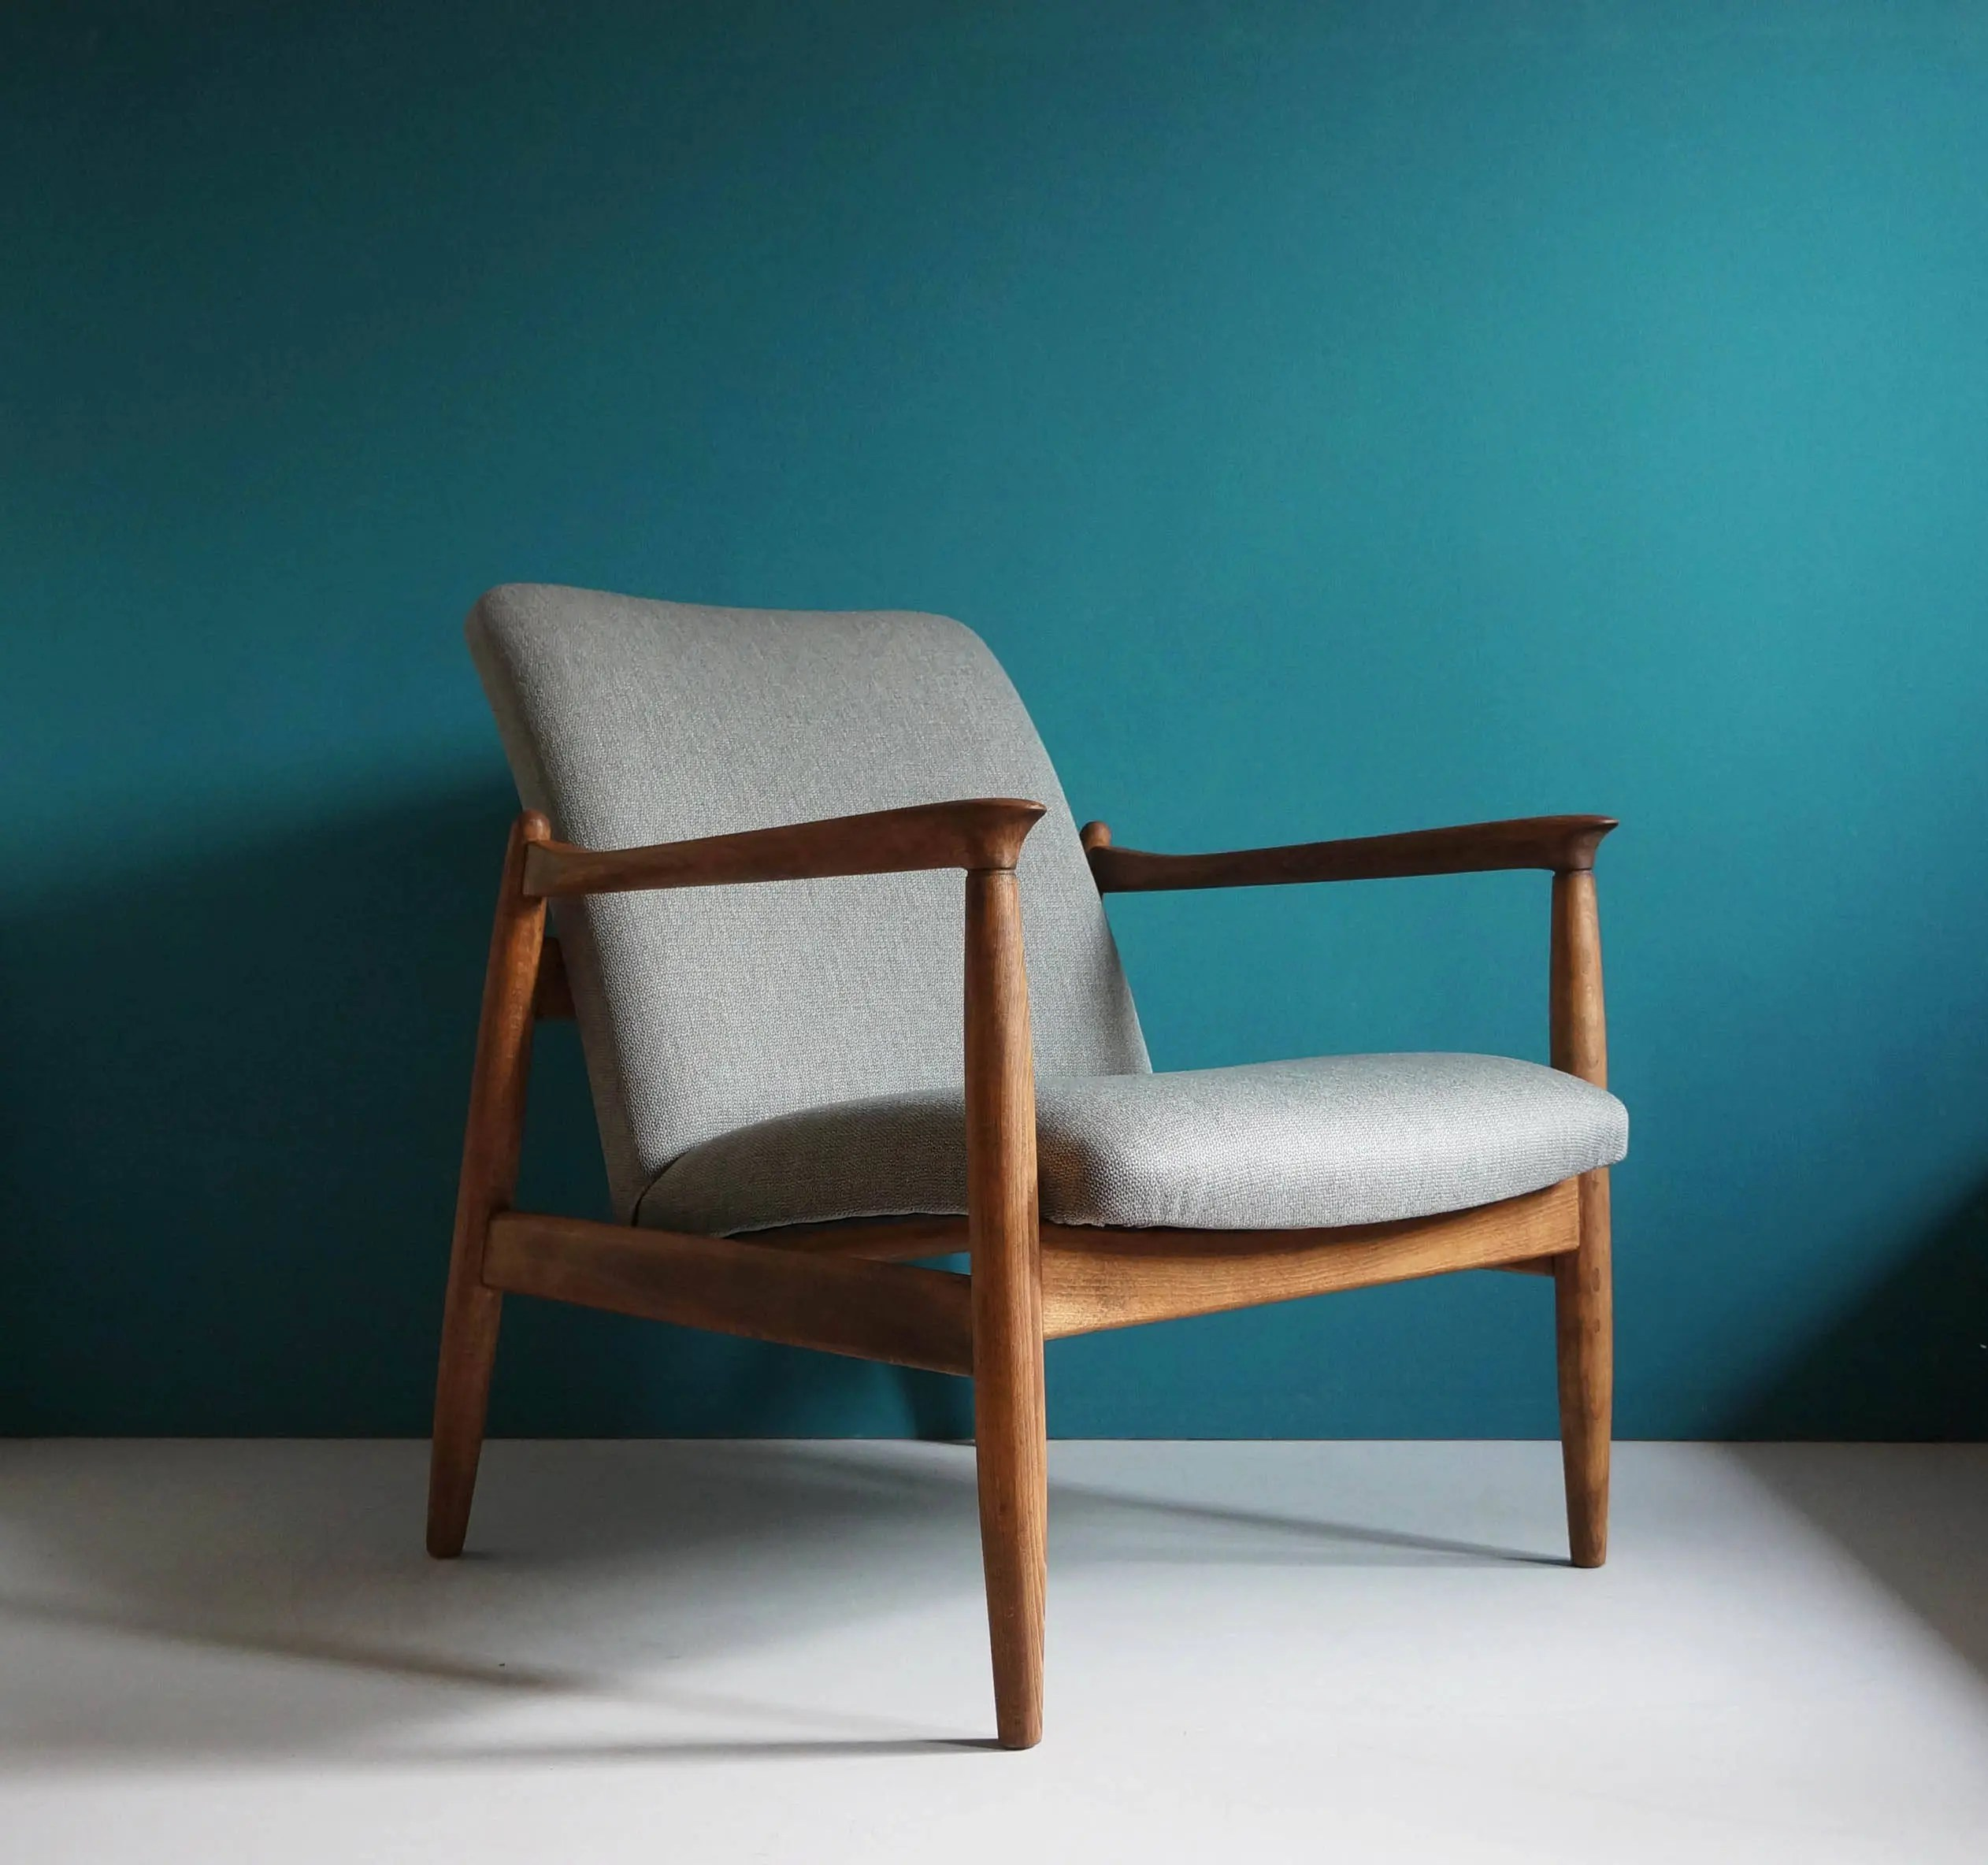 vintage arm chair shop chairs on wheels armchair etsy form mid century designed by edmund homa restored